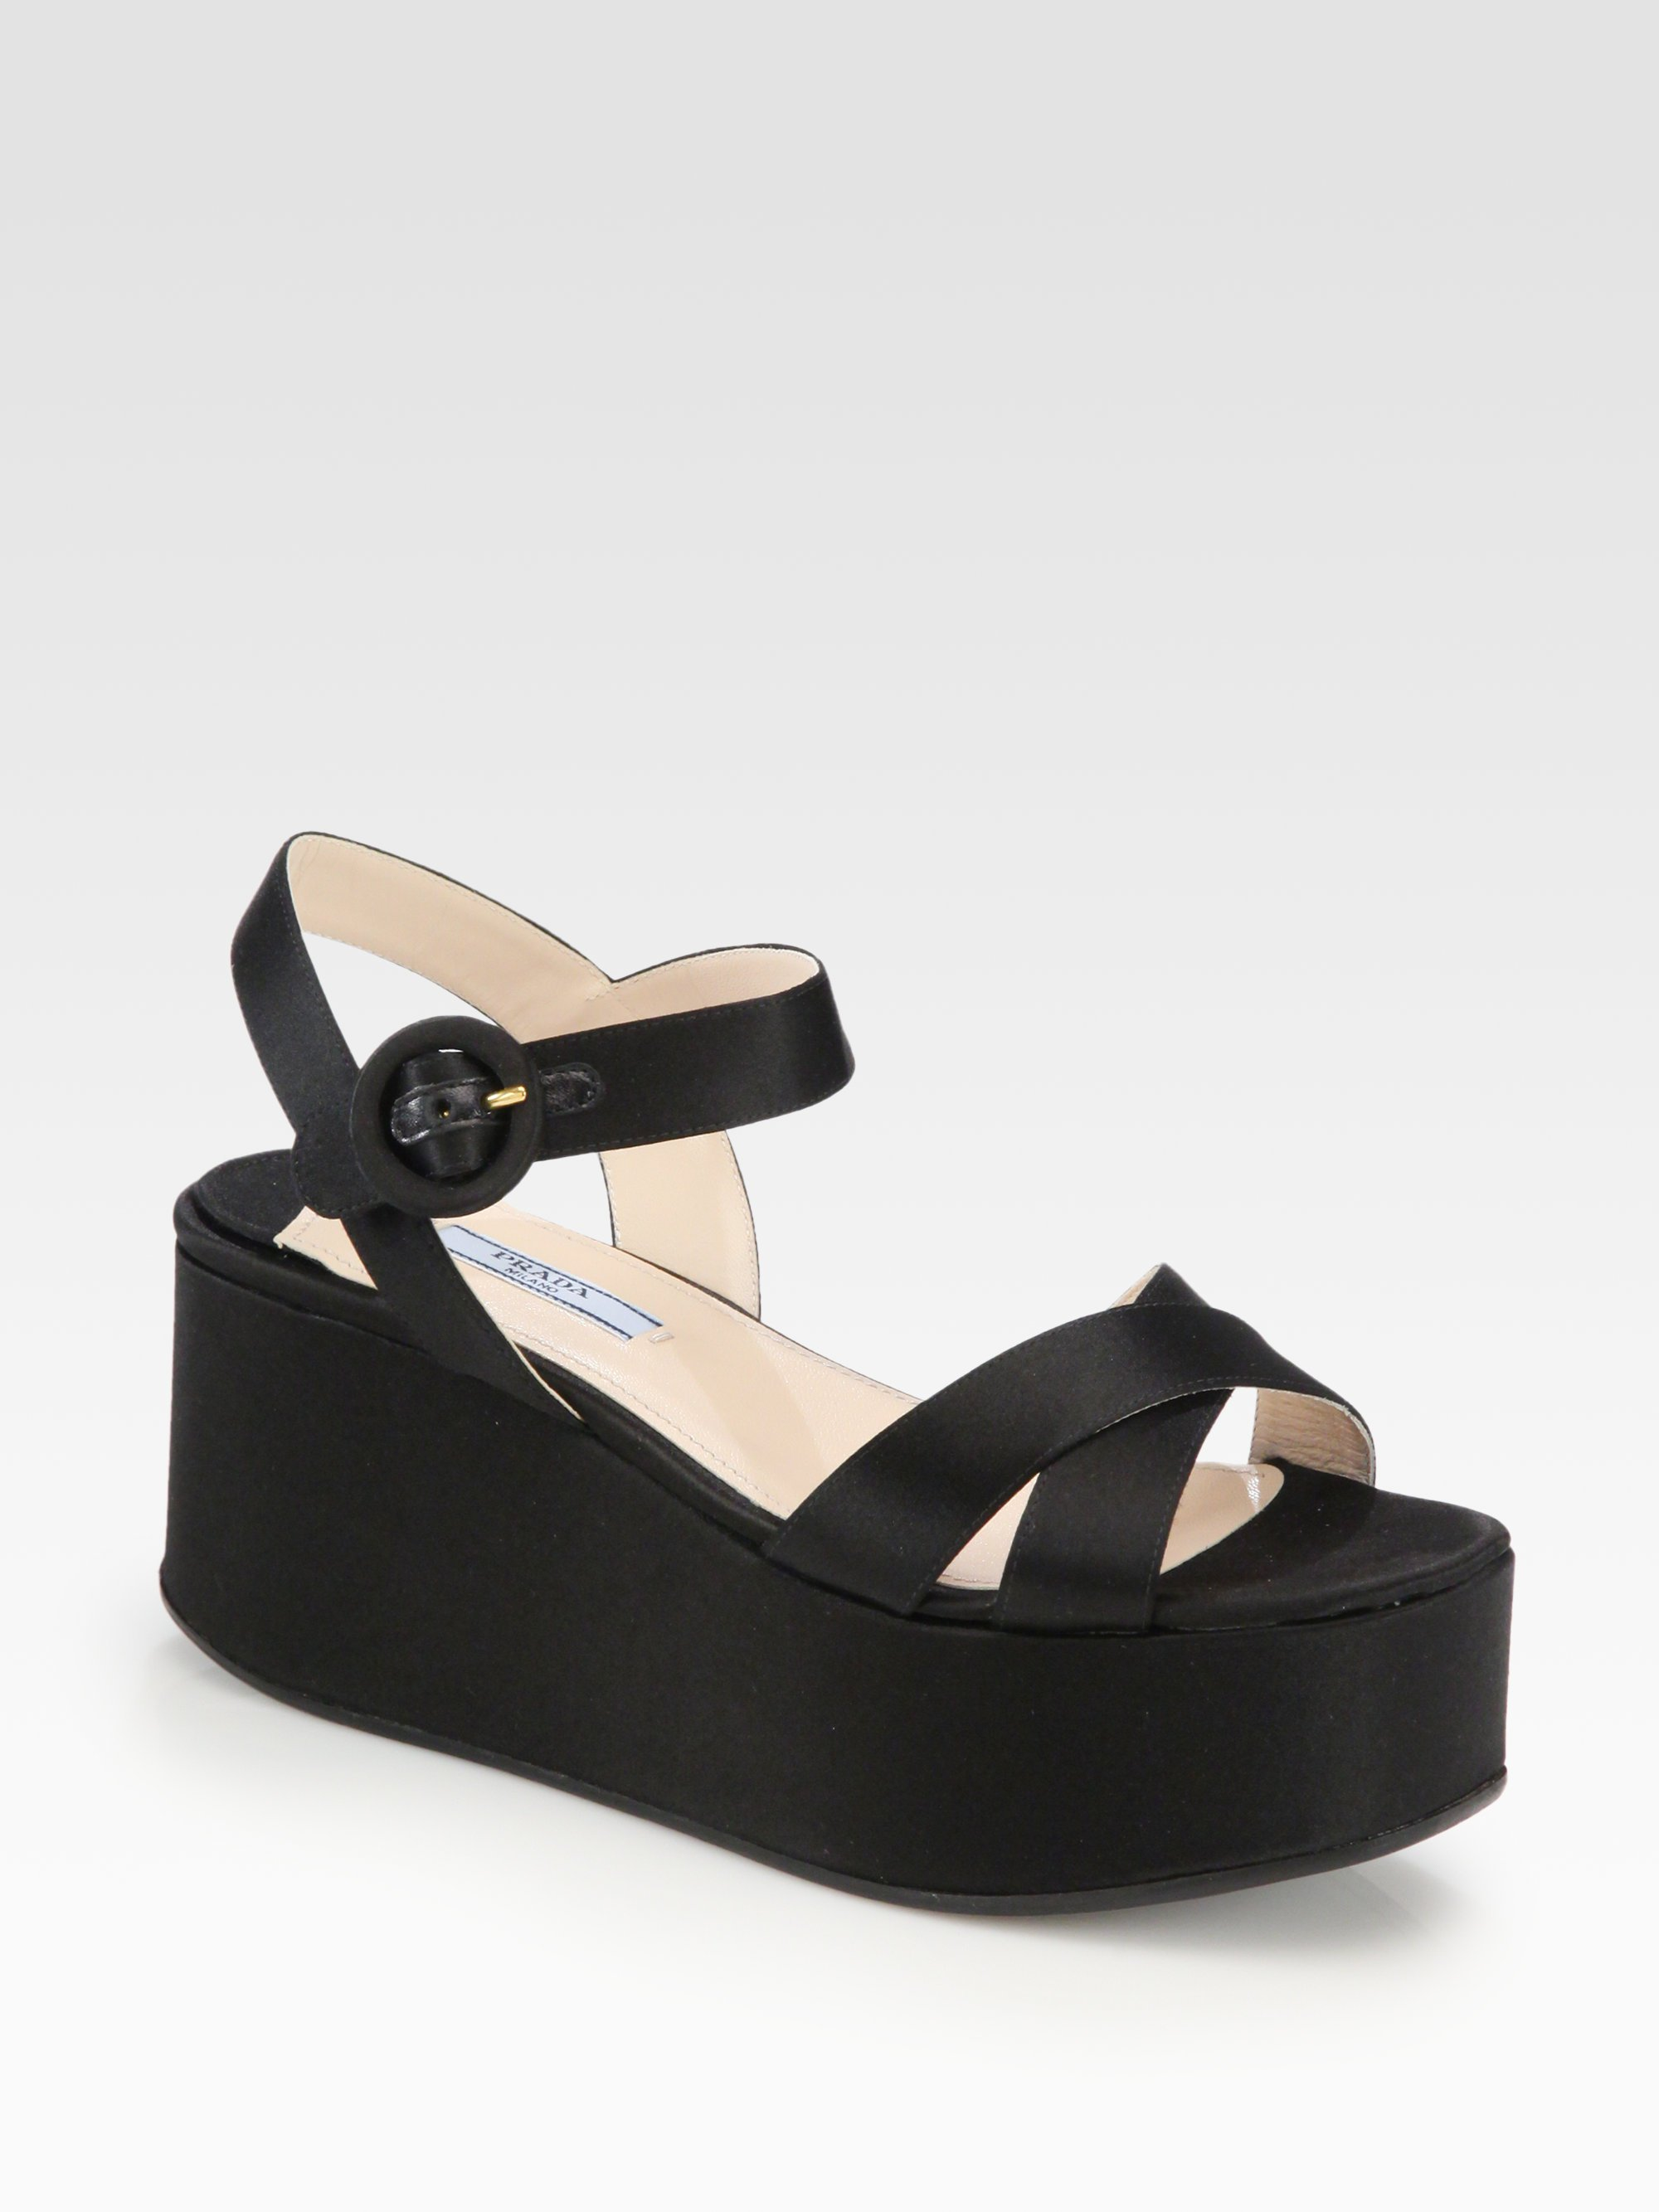 3dca8273e52 Lyst - Prada Satin Platform Wedge Sandals in Black